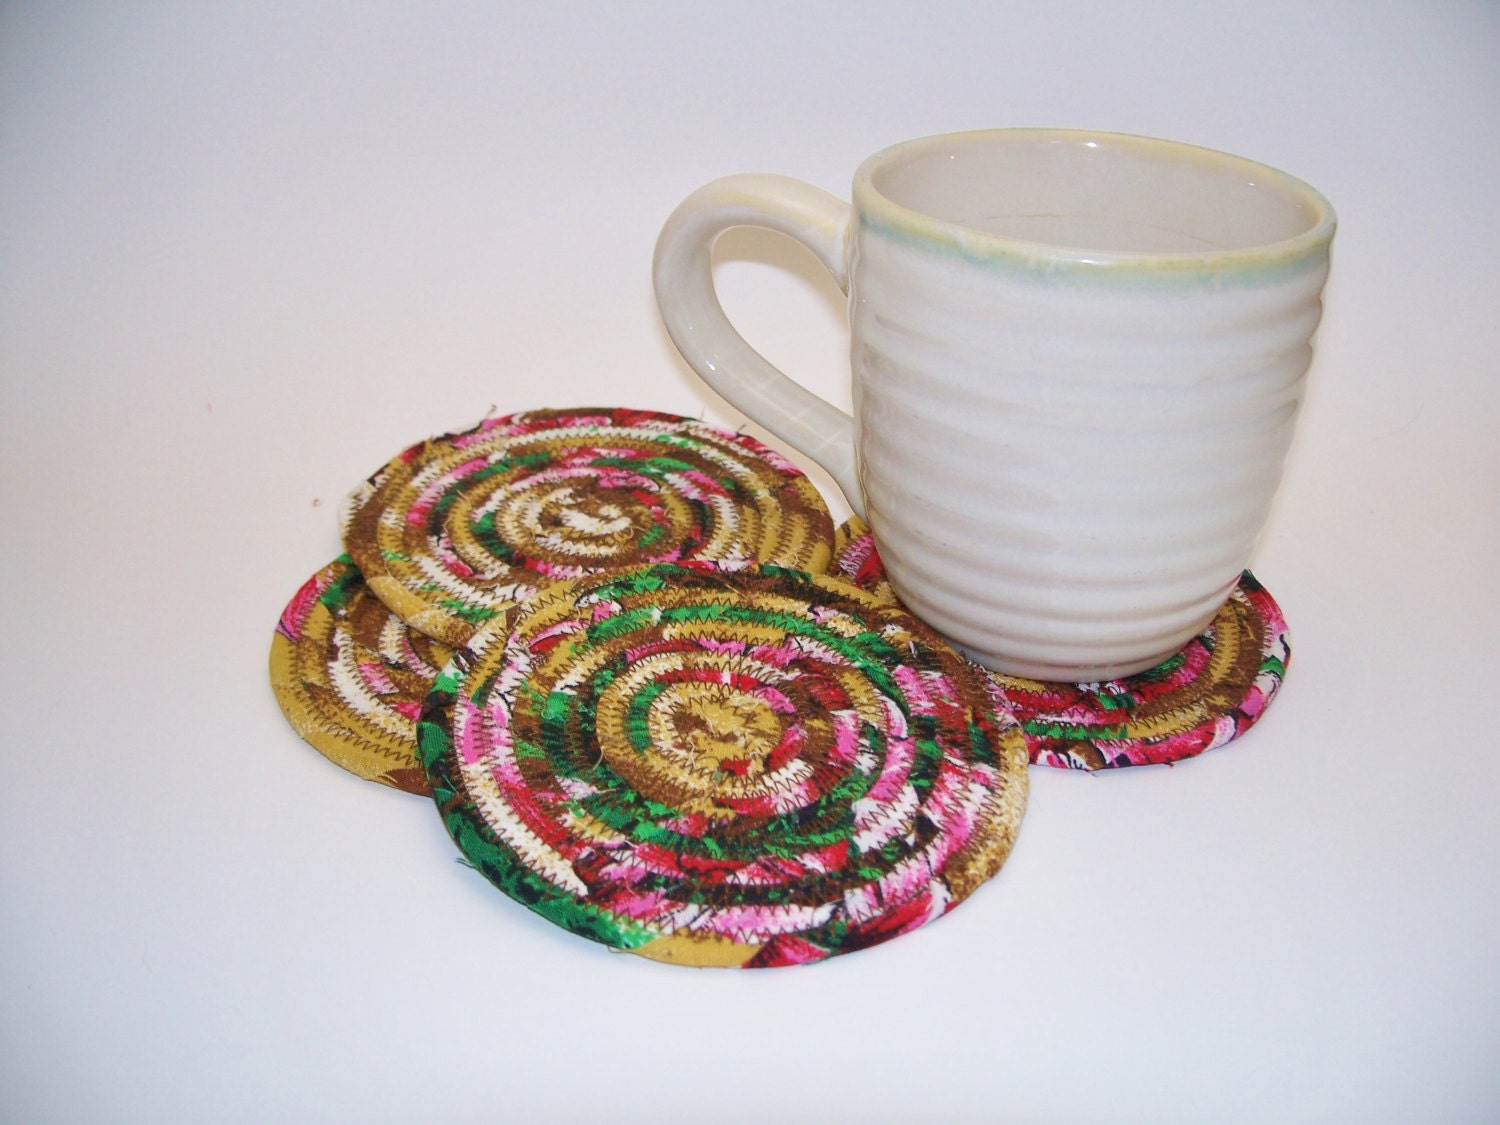 Multicolor Coiled Fabric Coasters Set of 4 by Bonbonsandmore